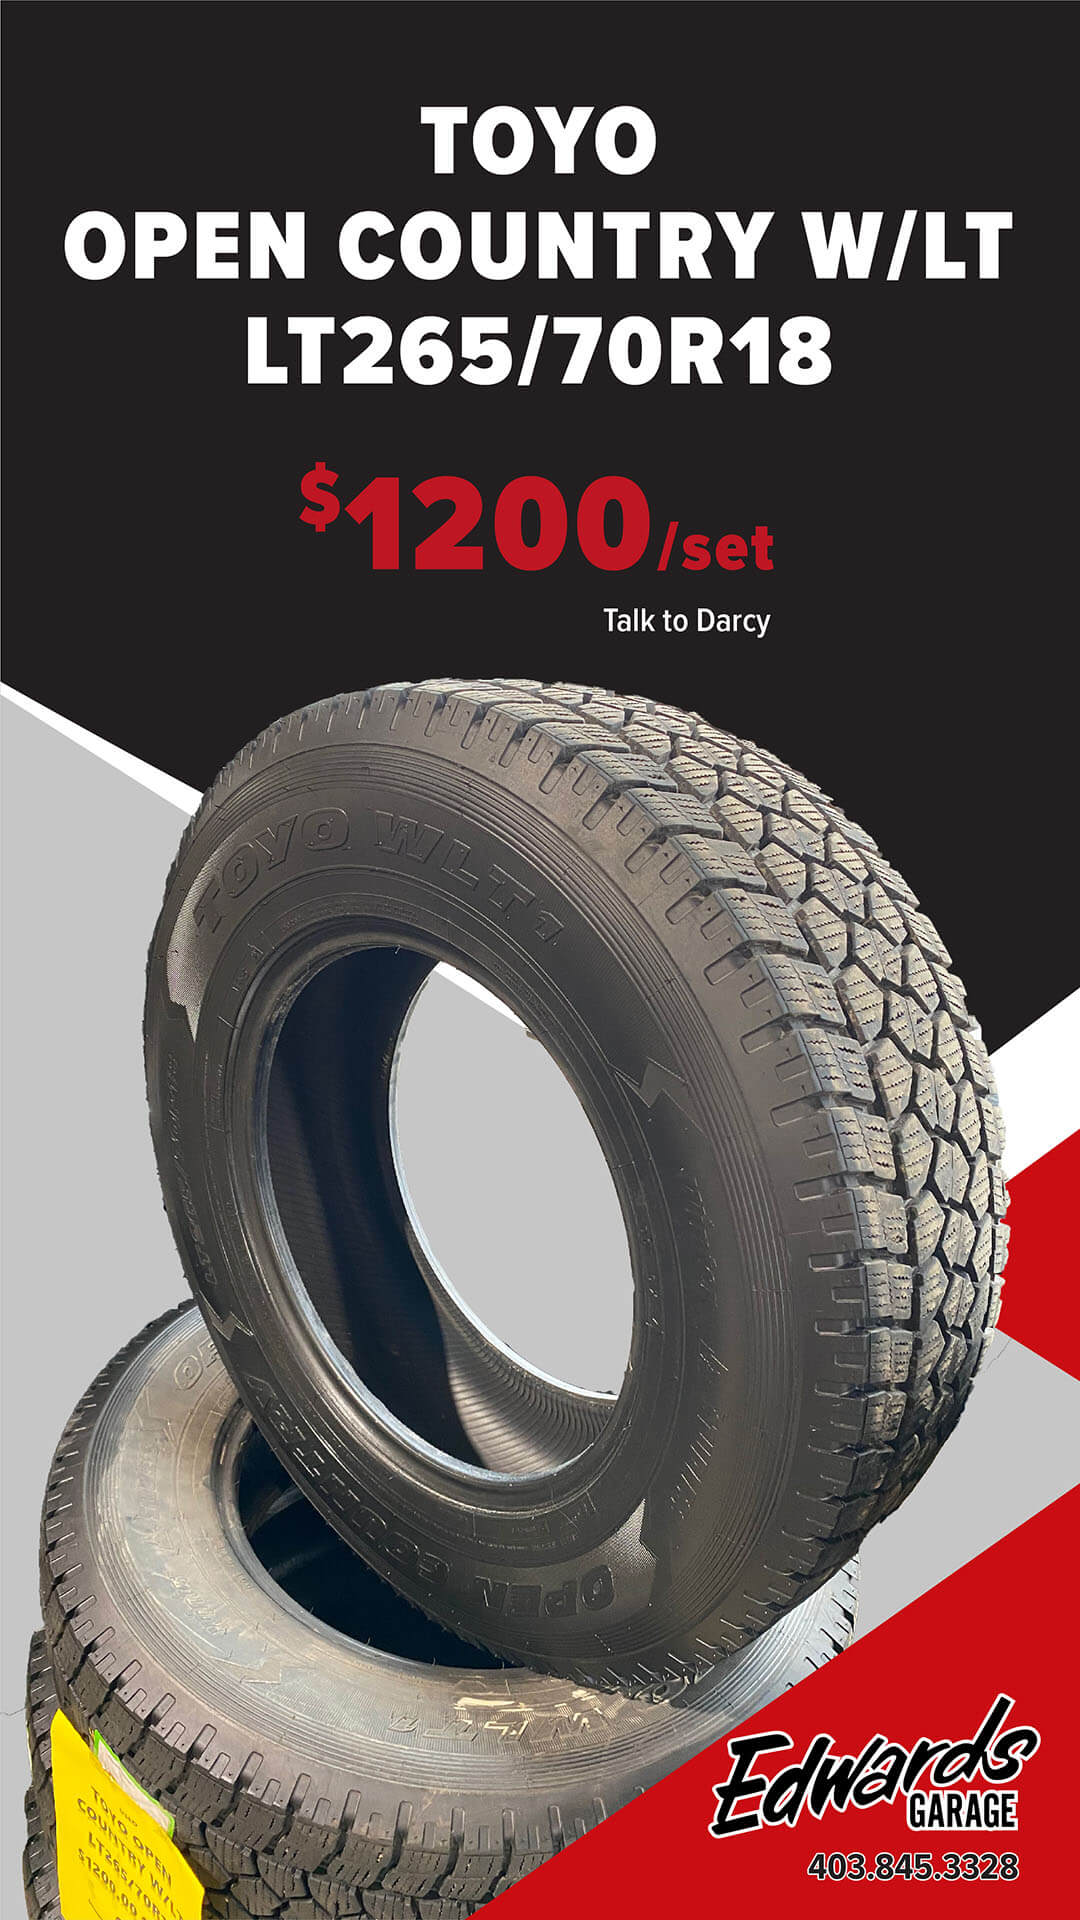 Set of Tires - Toyo W/LT